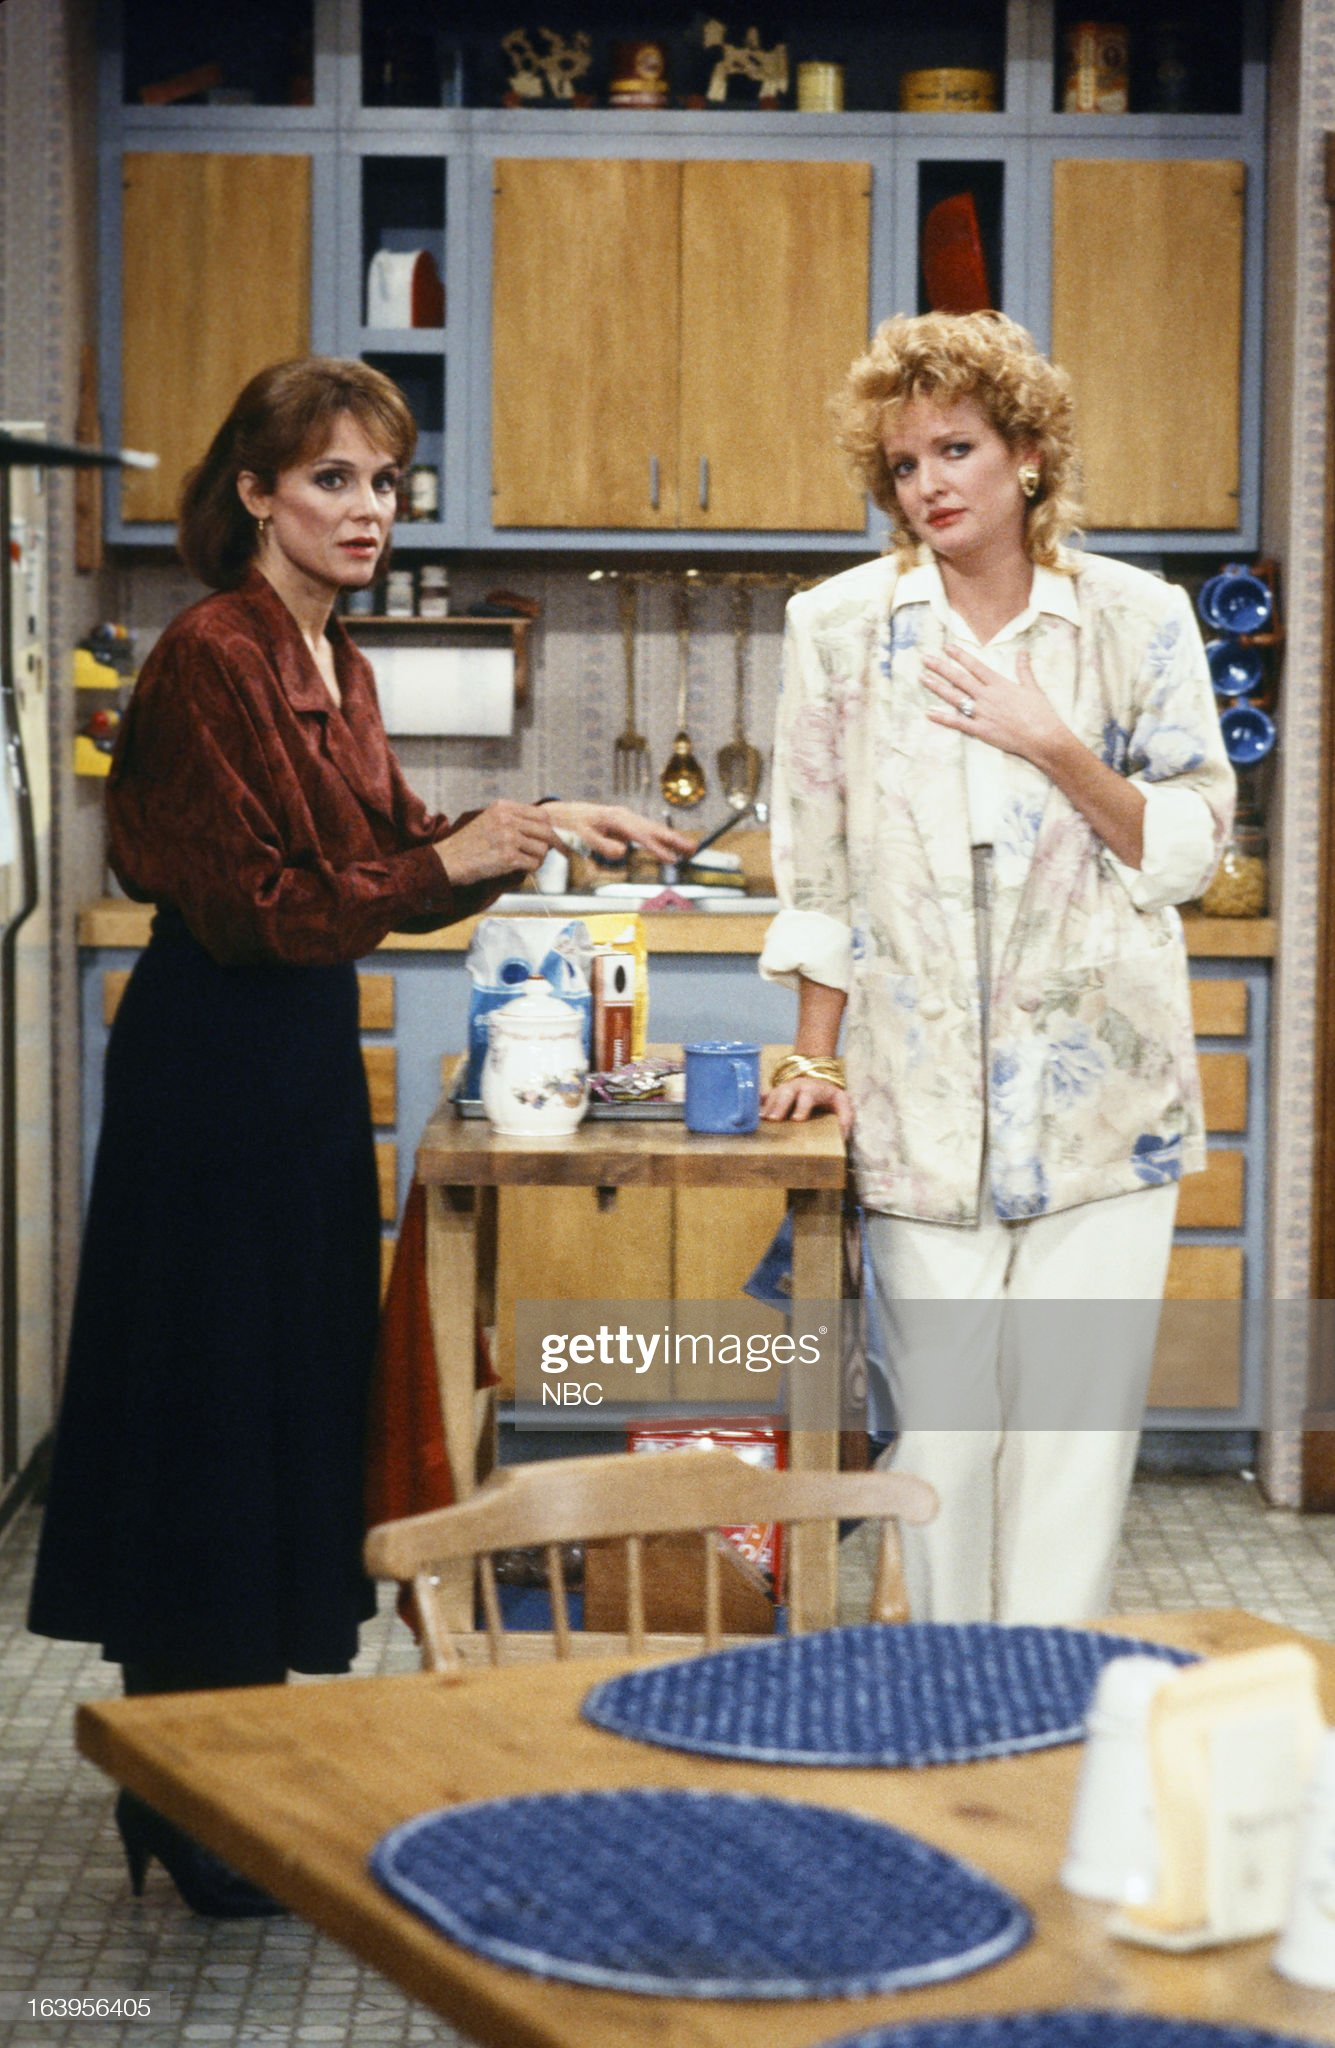 the-six-episode-102-pictured-valerie-harper-as-valerie-hogan-as-picture-id163956405